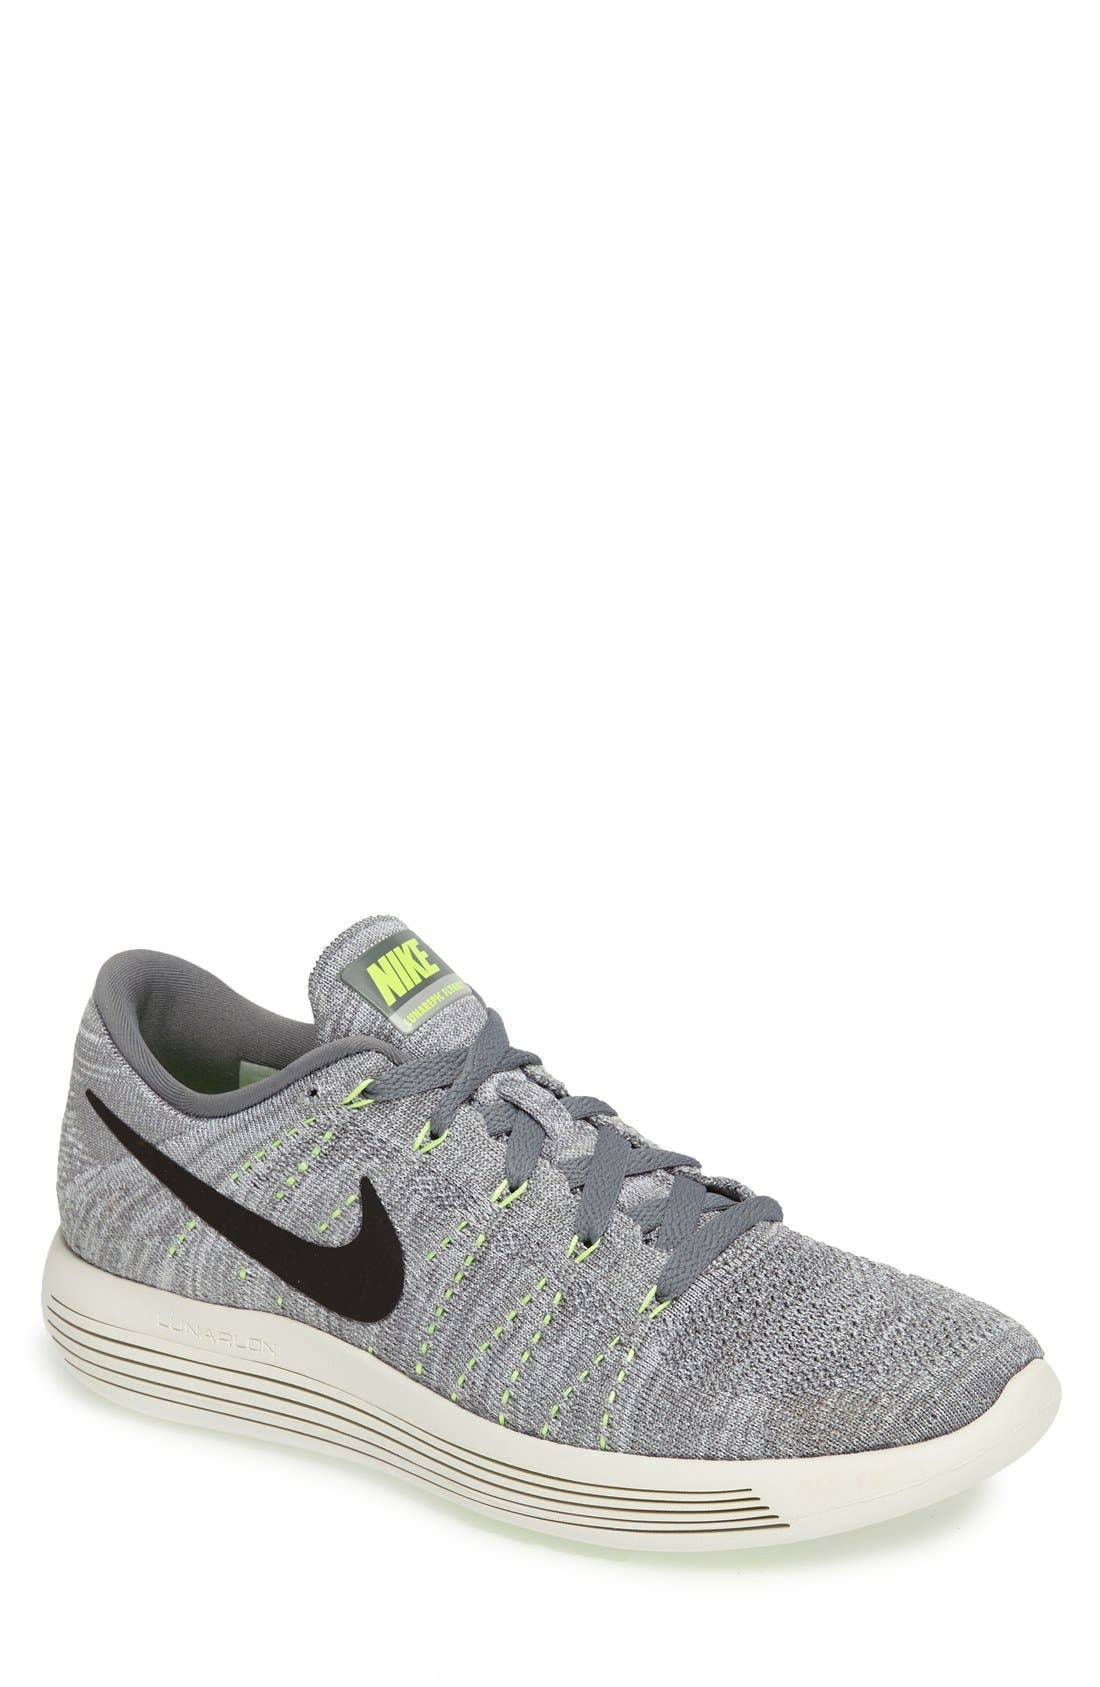 Main Image - Nike 'LunarEpic Low Flyknit' Running Shoe (Men)